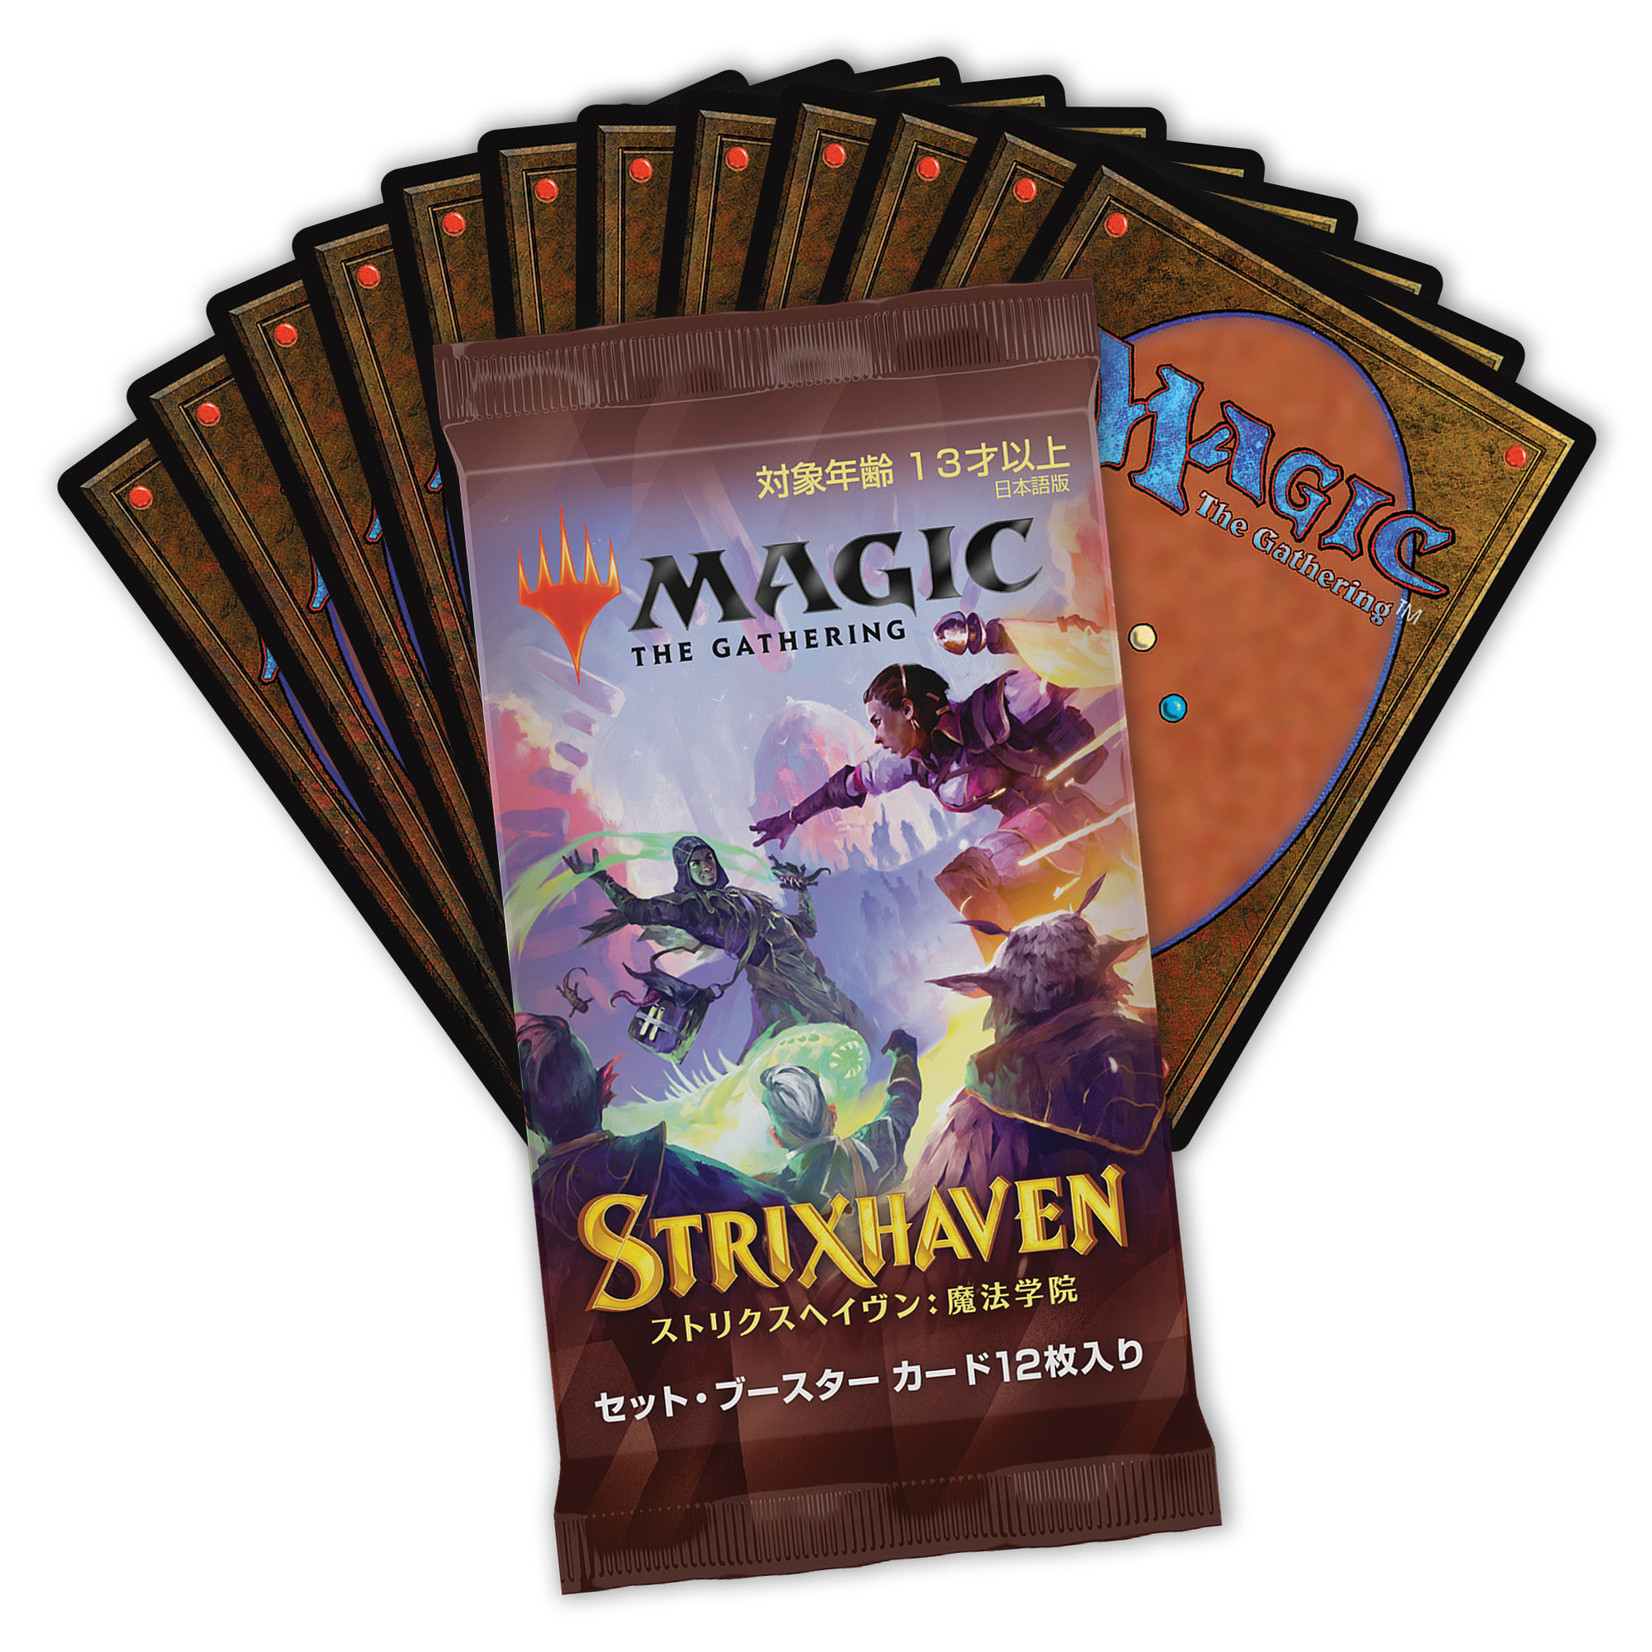 Magic: The Gathering Magic: The Gathering - Strixhaven: School of Mages - Japanese Set Booster Pack